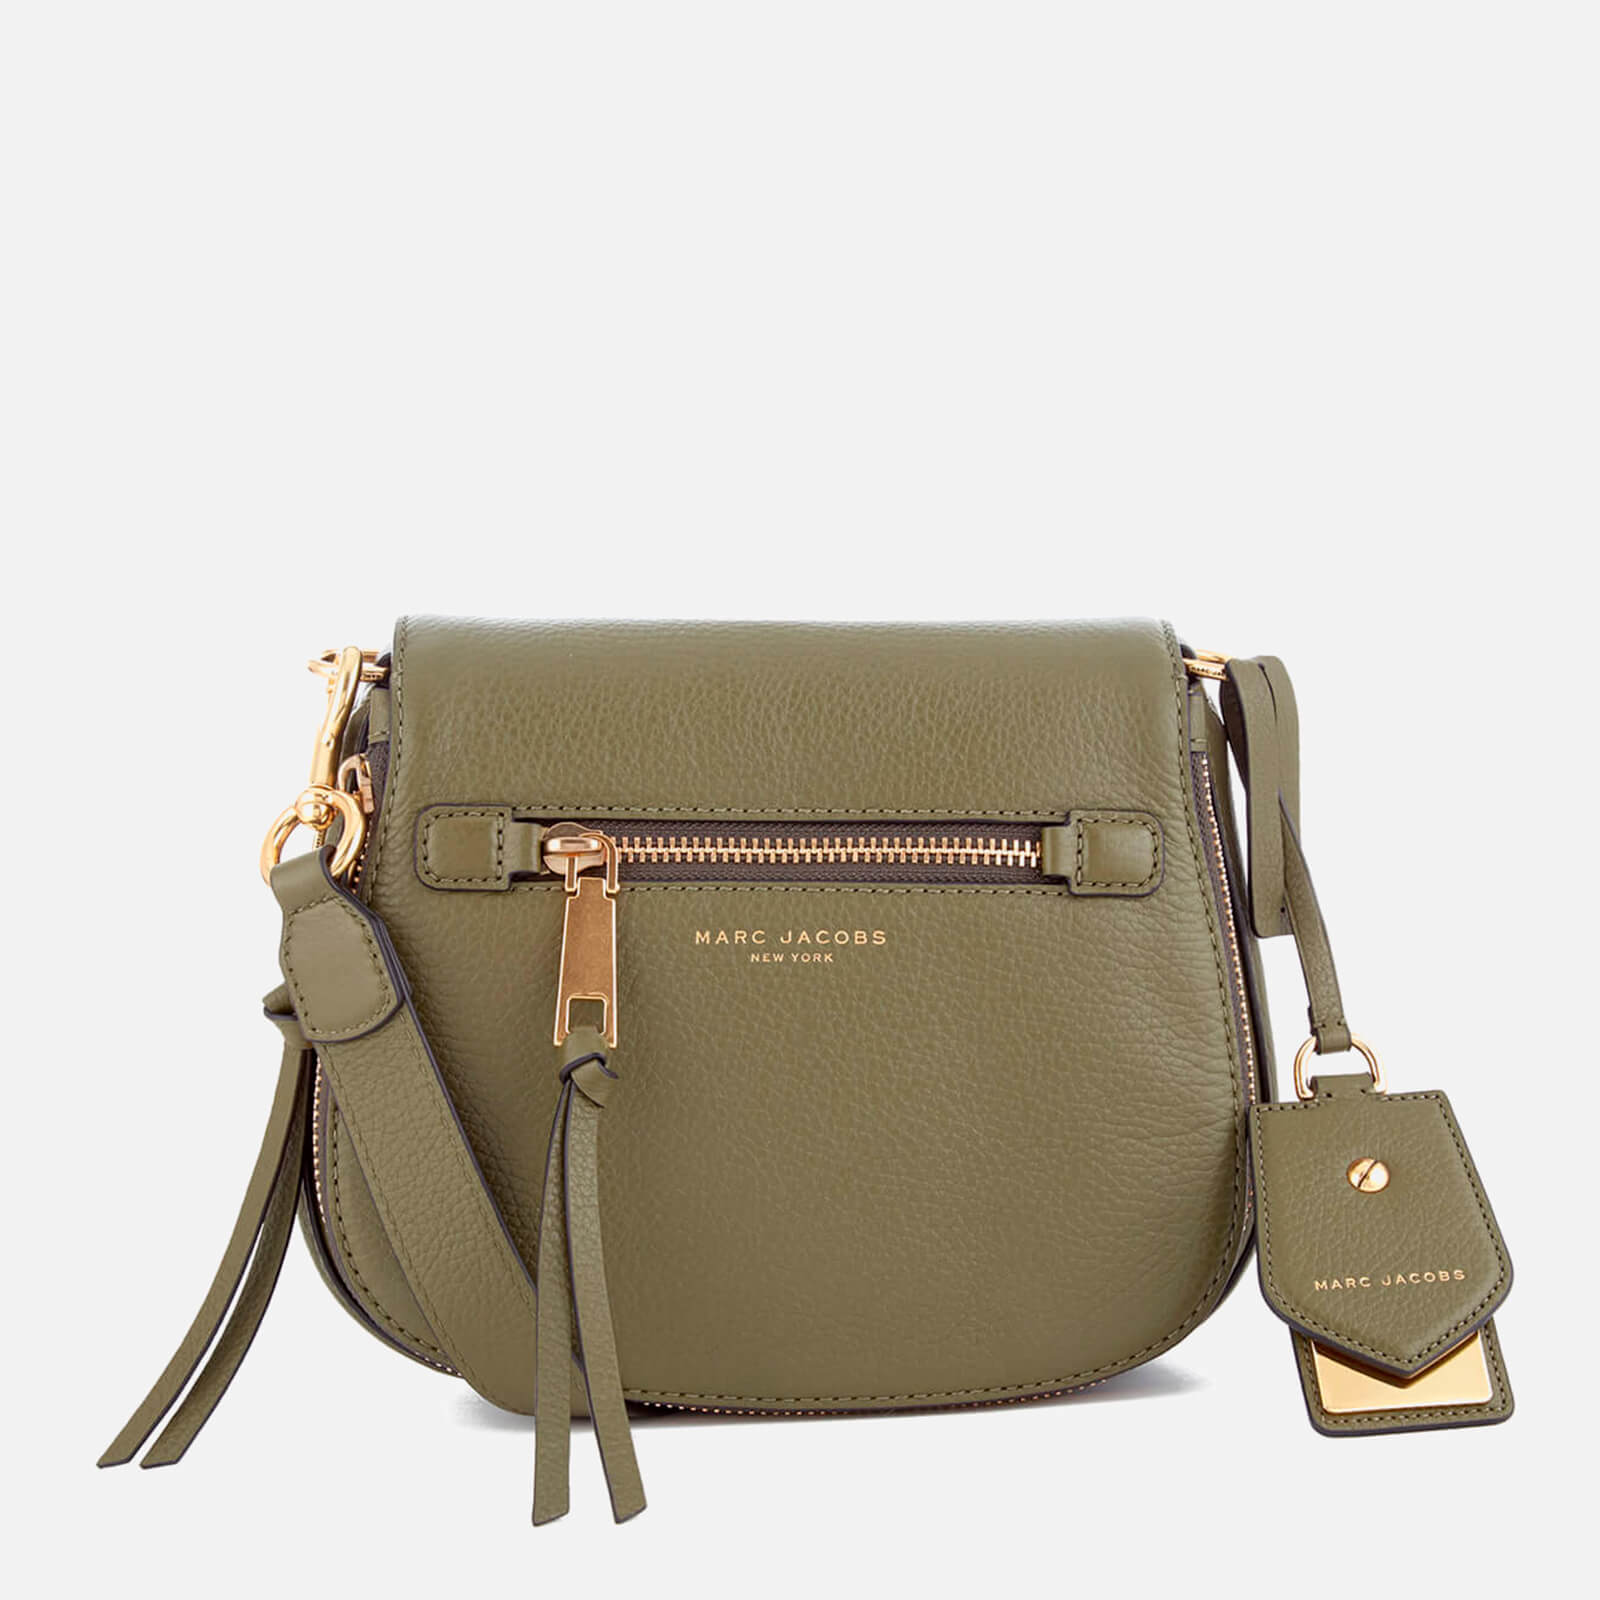 8a508d5623784 Marc Jacobs Women s Recruit Small Nomad Saddle Bag - Army Green - Free UK  Delivery over £50